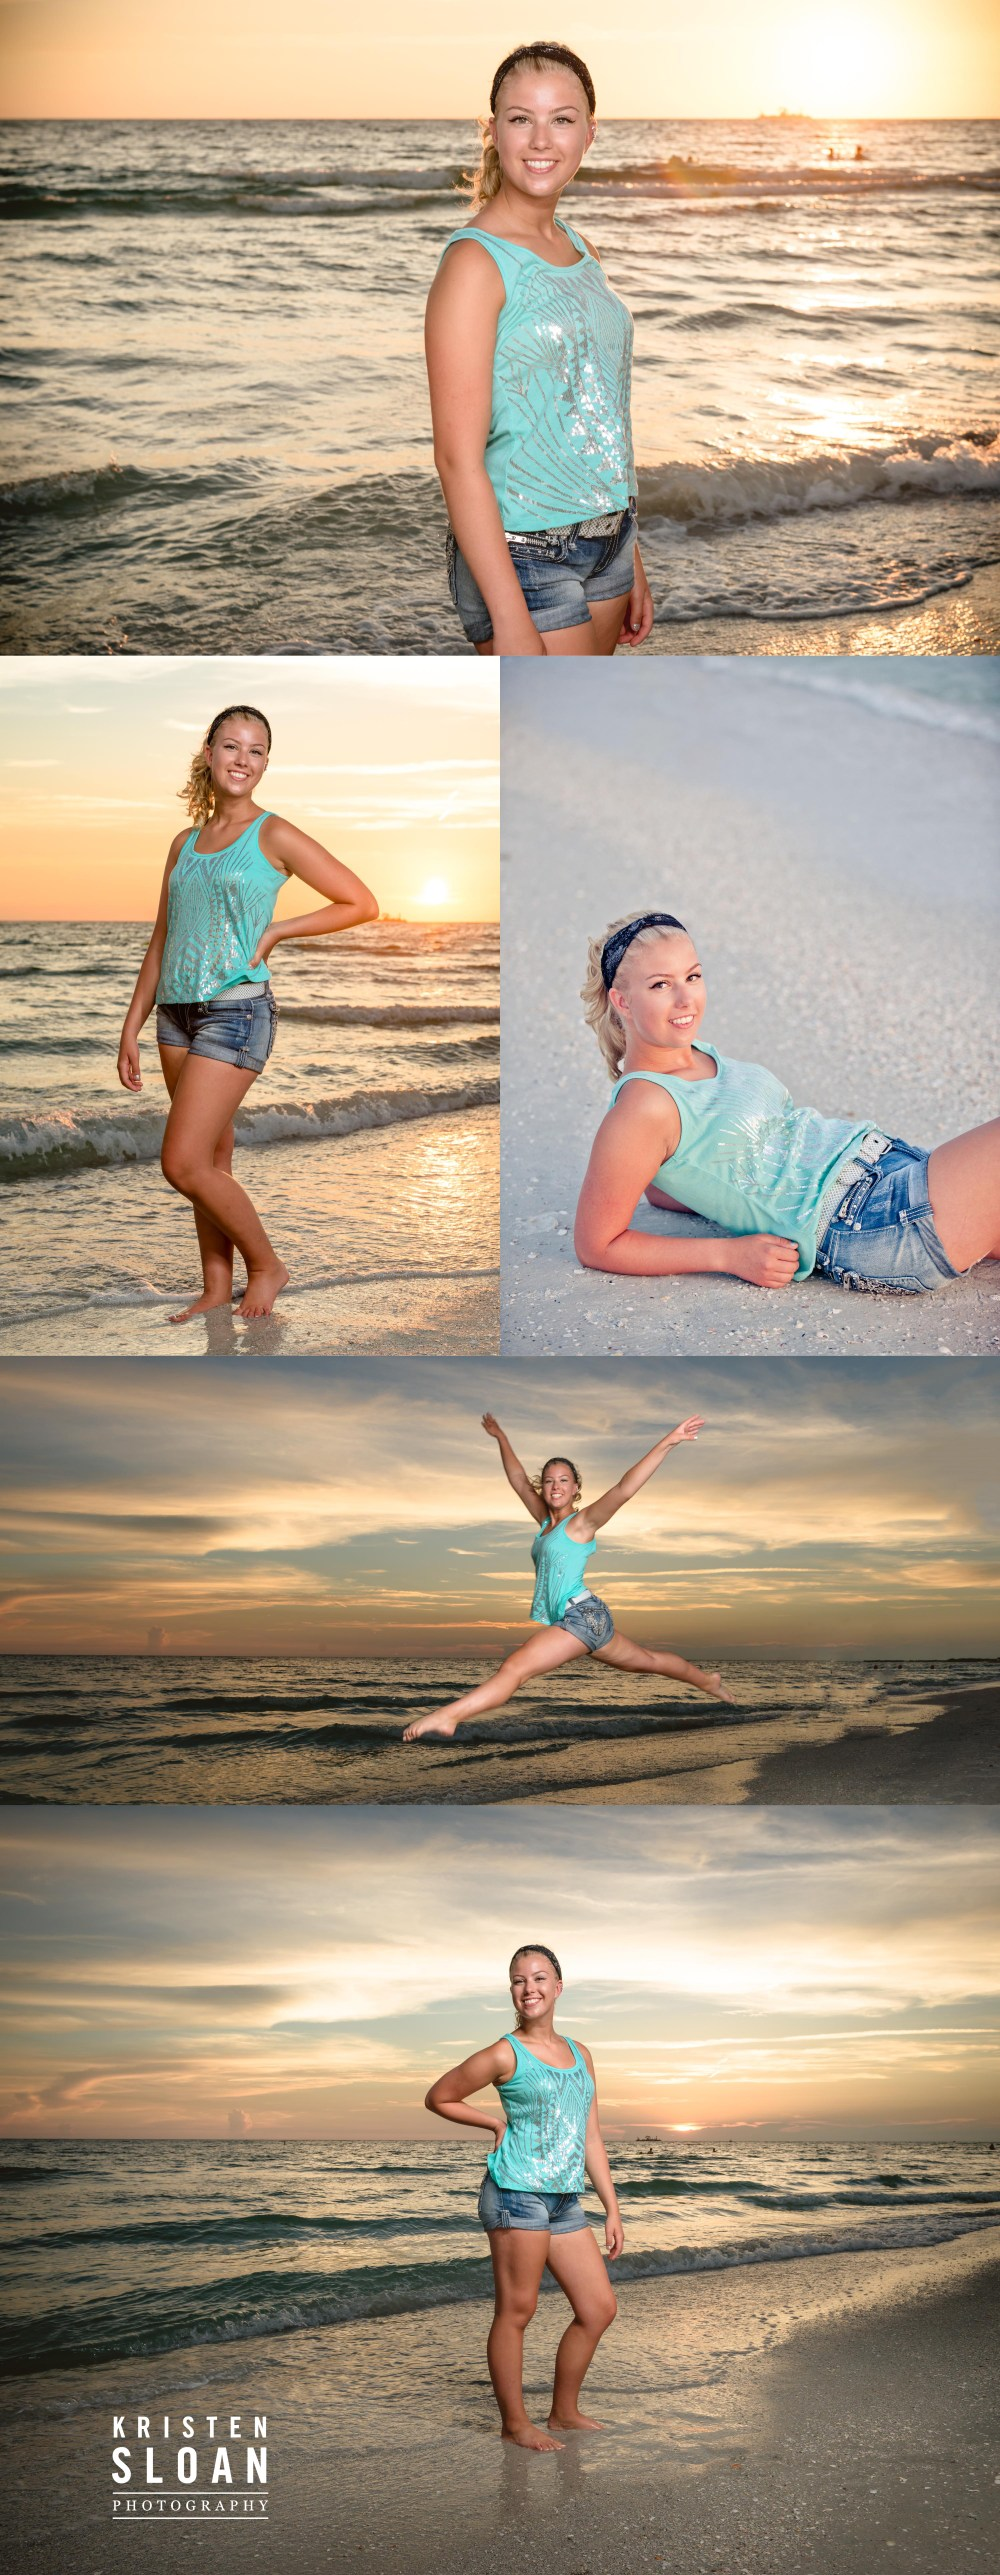 TradeWinds Resort St Pete Beach FL Senior Portrait Photos by Photographer Kristen Sloan